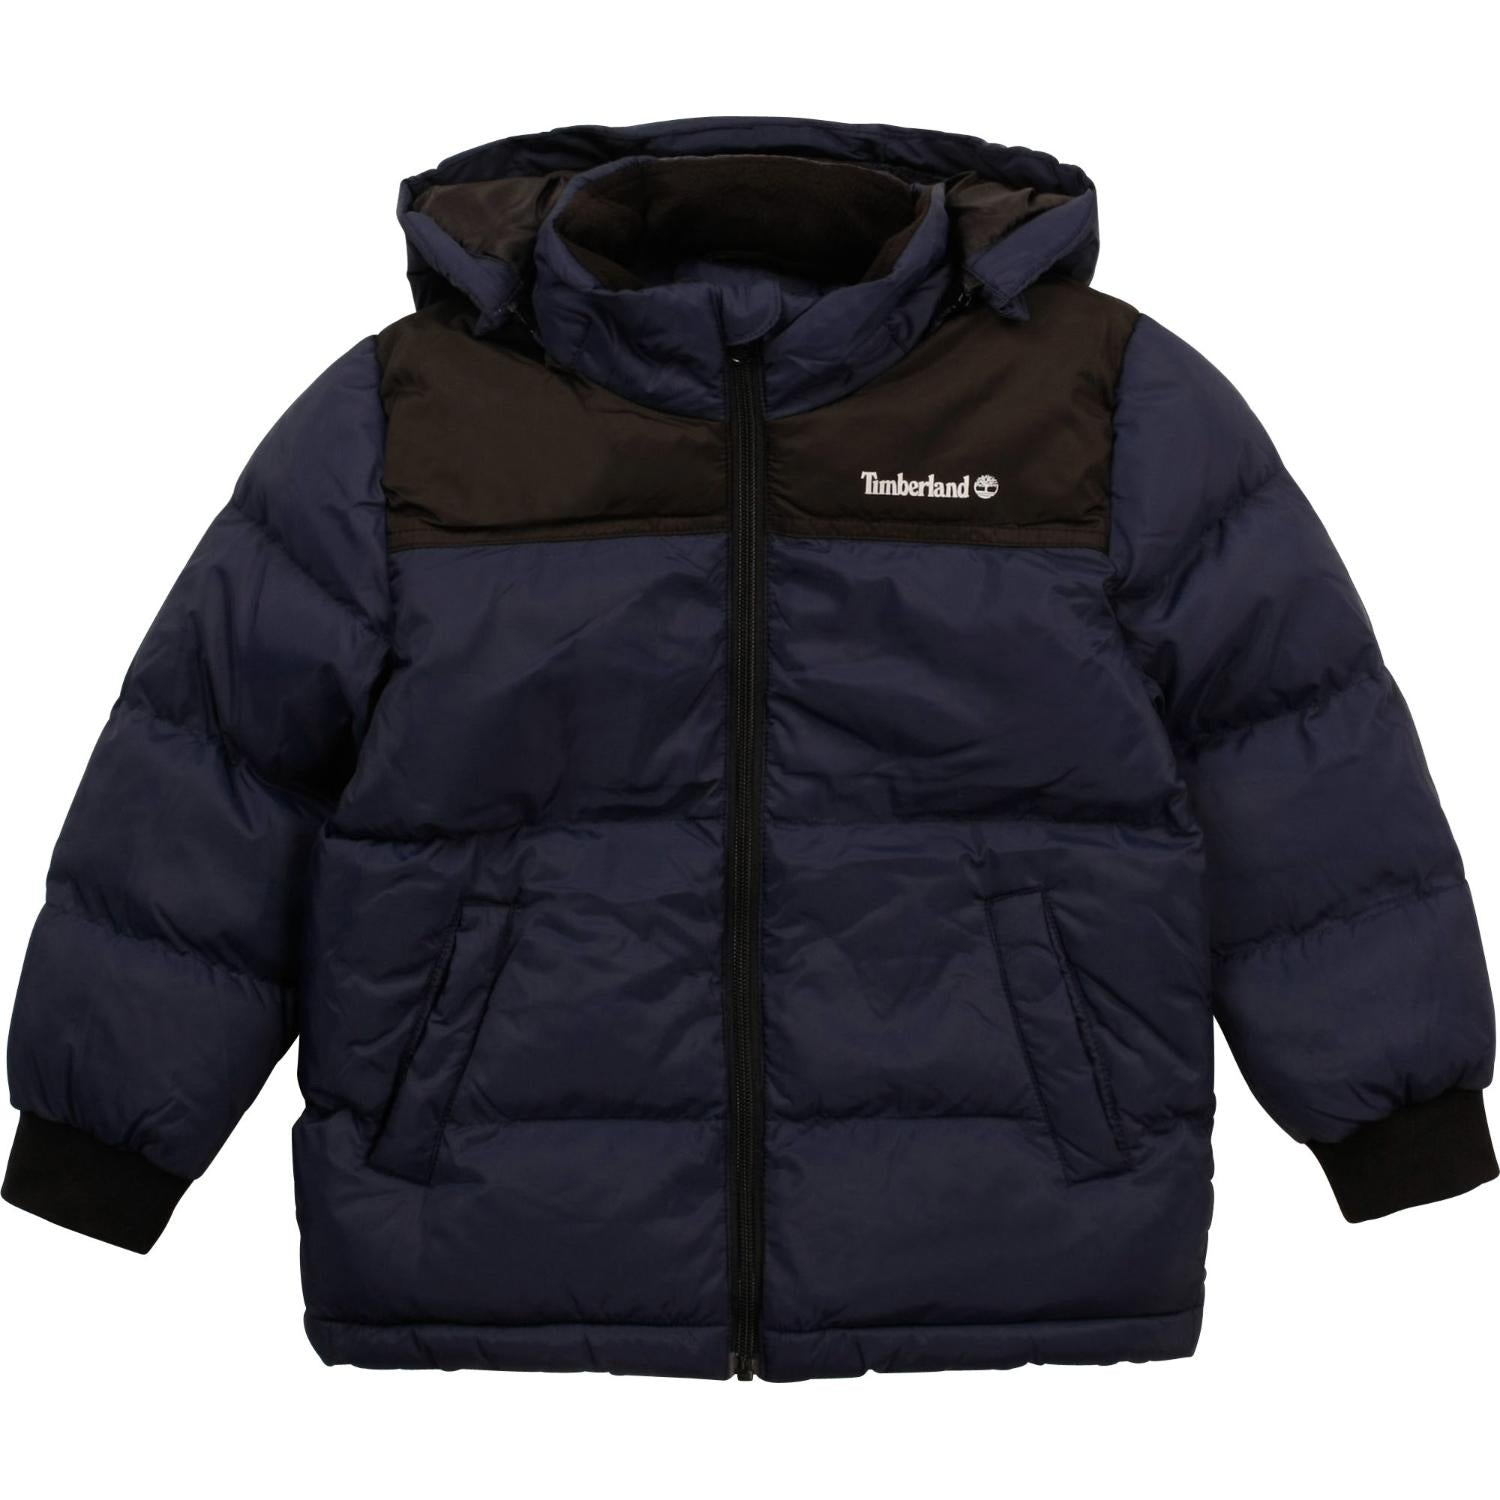 TIMBERLAND PUFFER JACKET WITH DETACHABLE HOOD T26515 85T